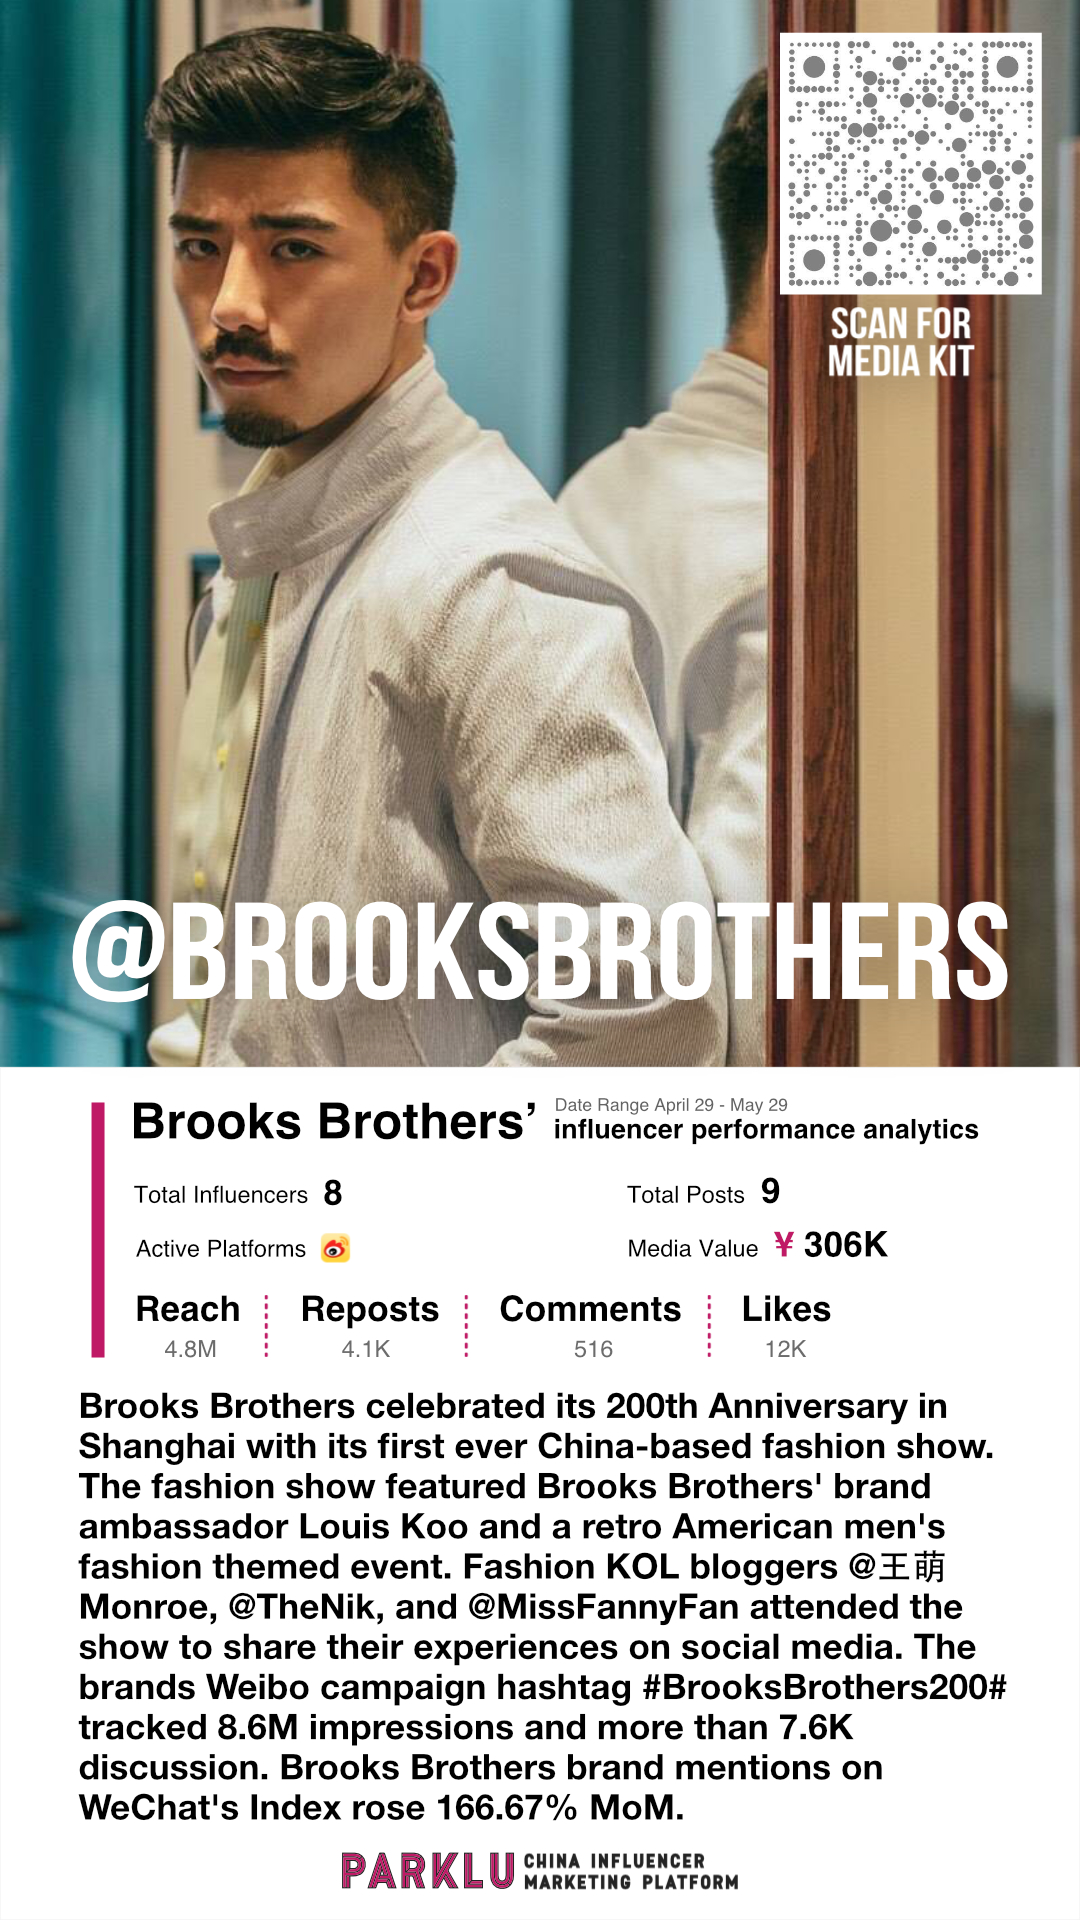 Brooks Brothers 200th Anniversary Fashion KOL Bloggers